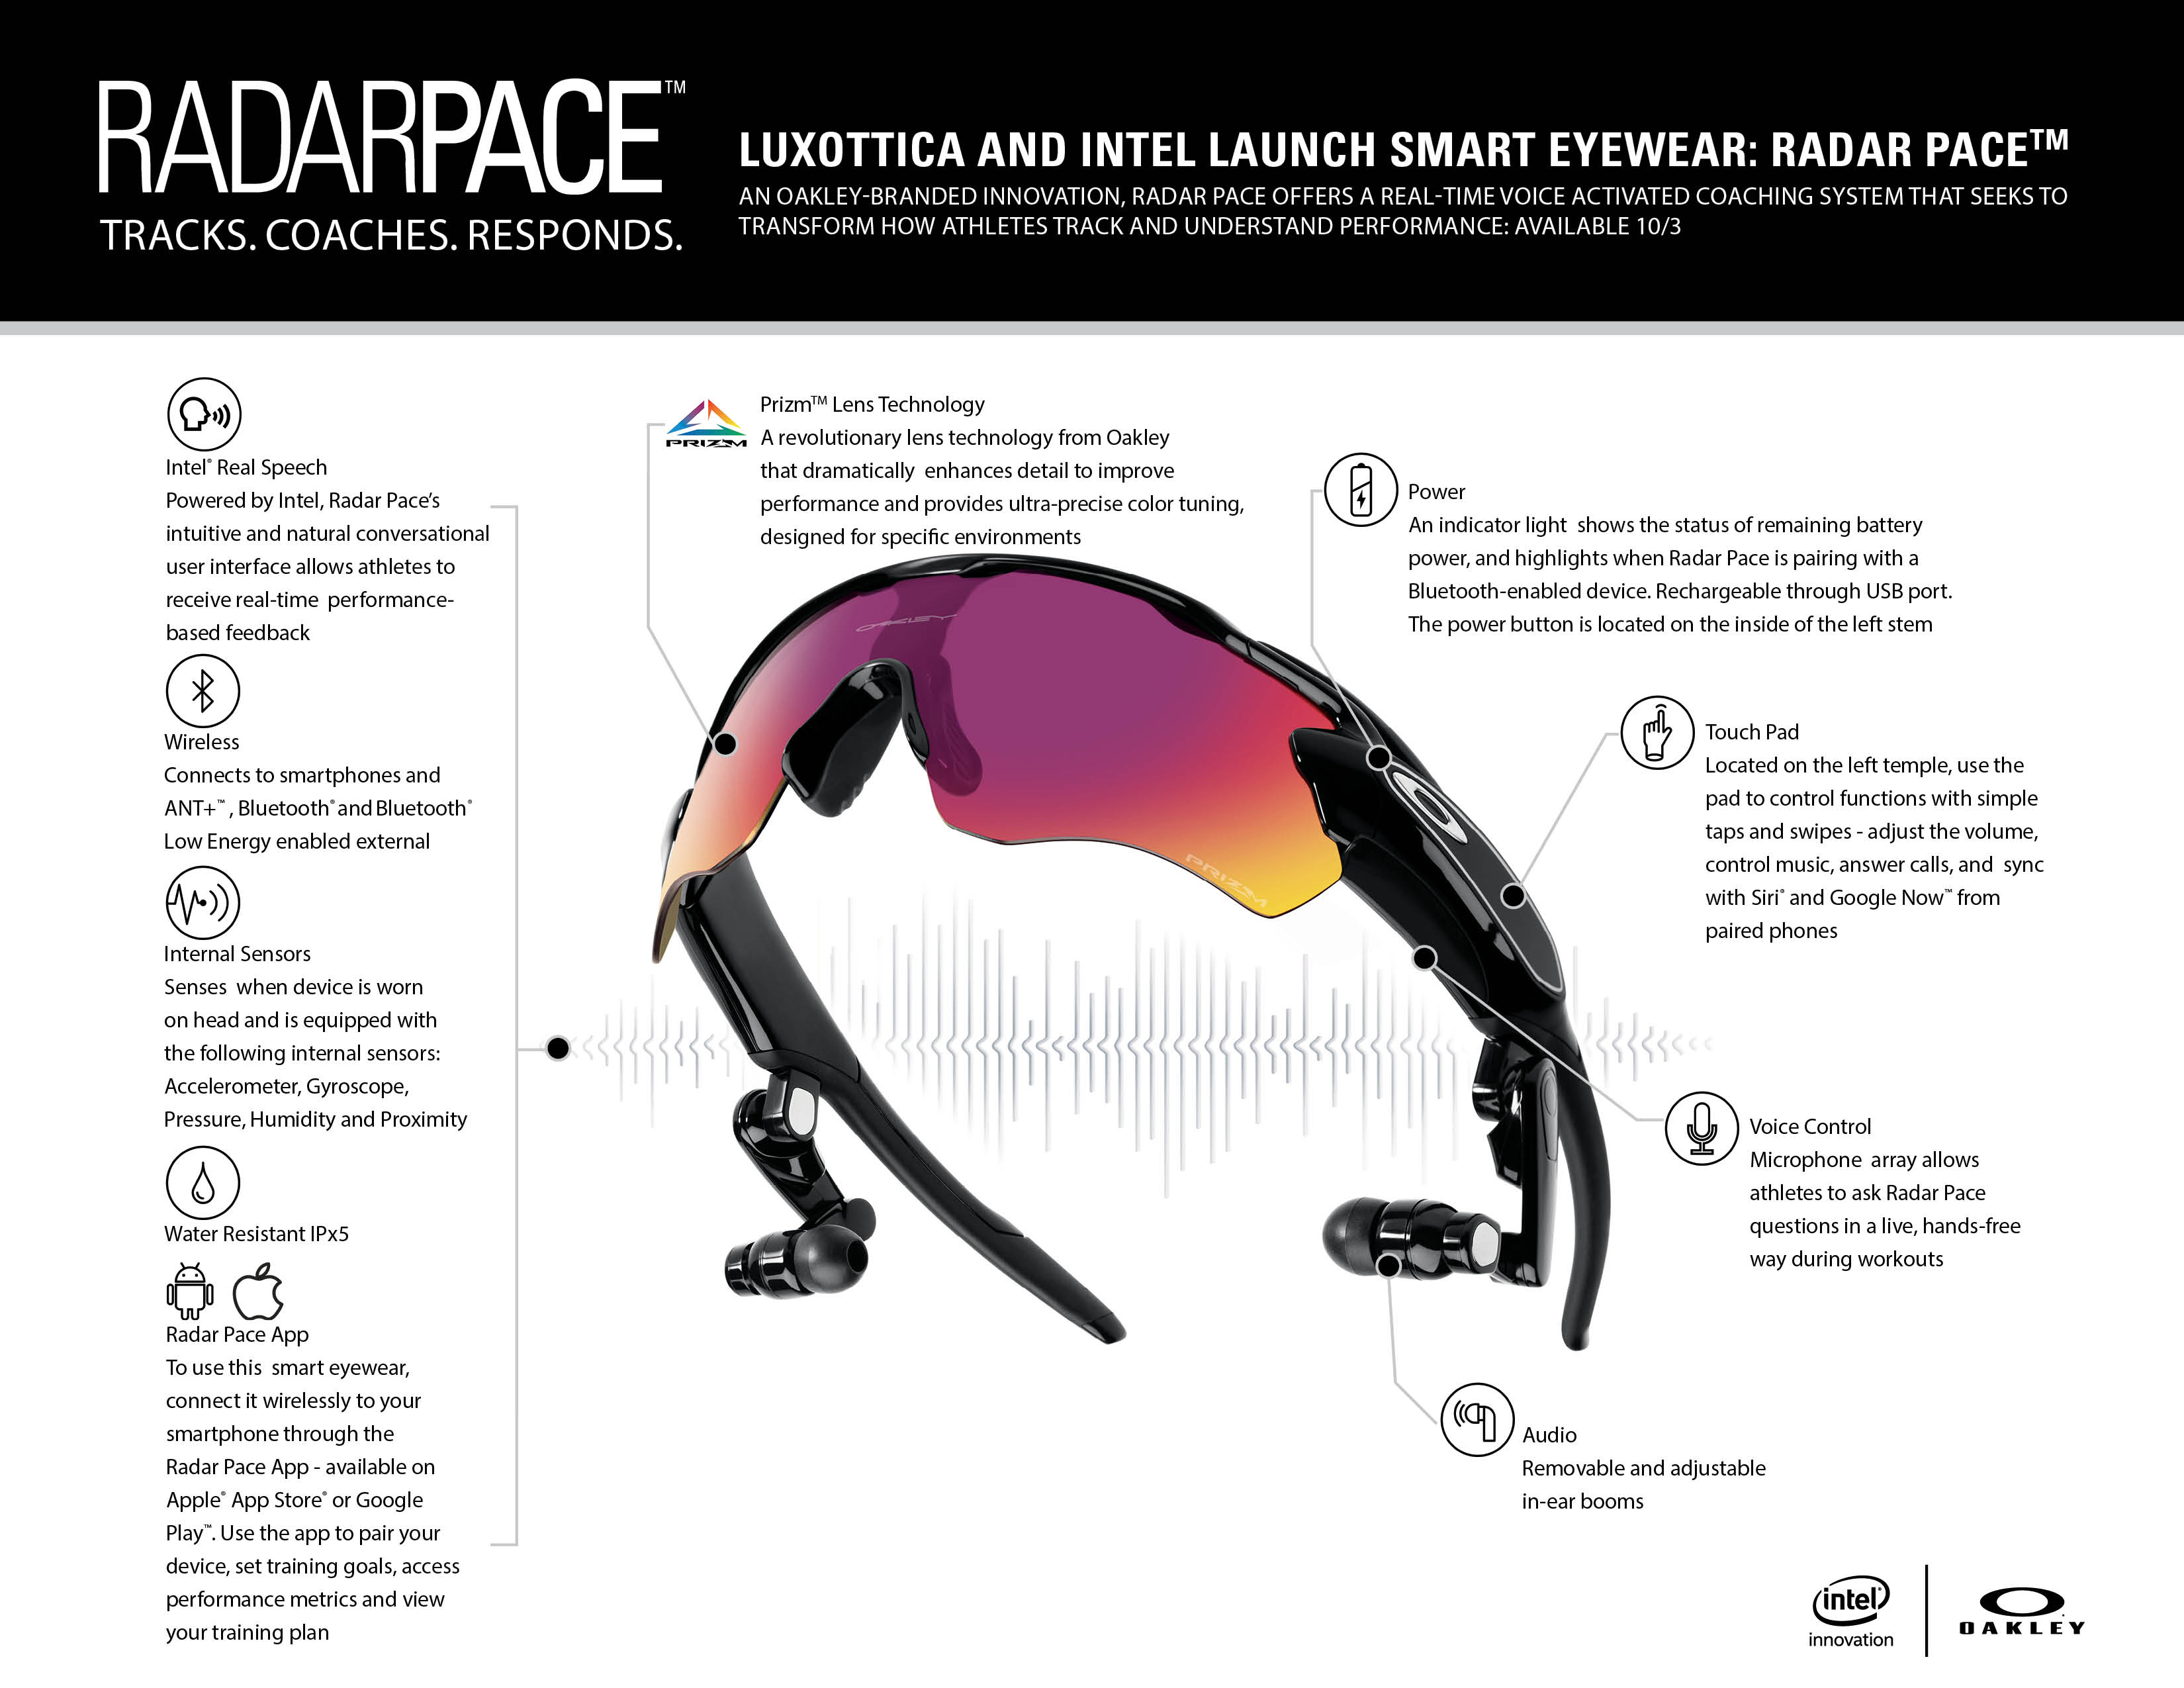 oakley_radar-pace_tech-sheet_english